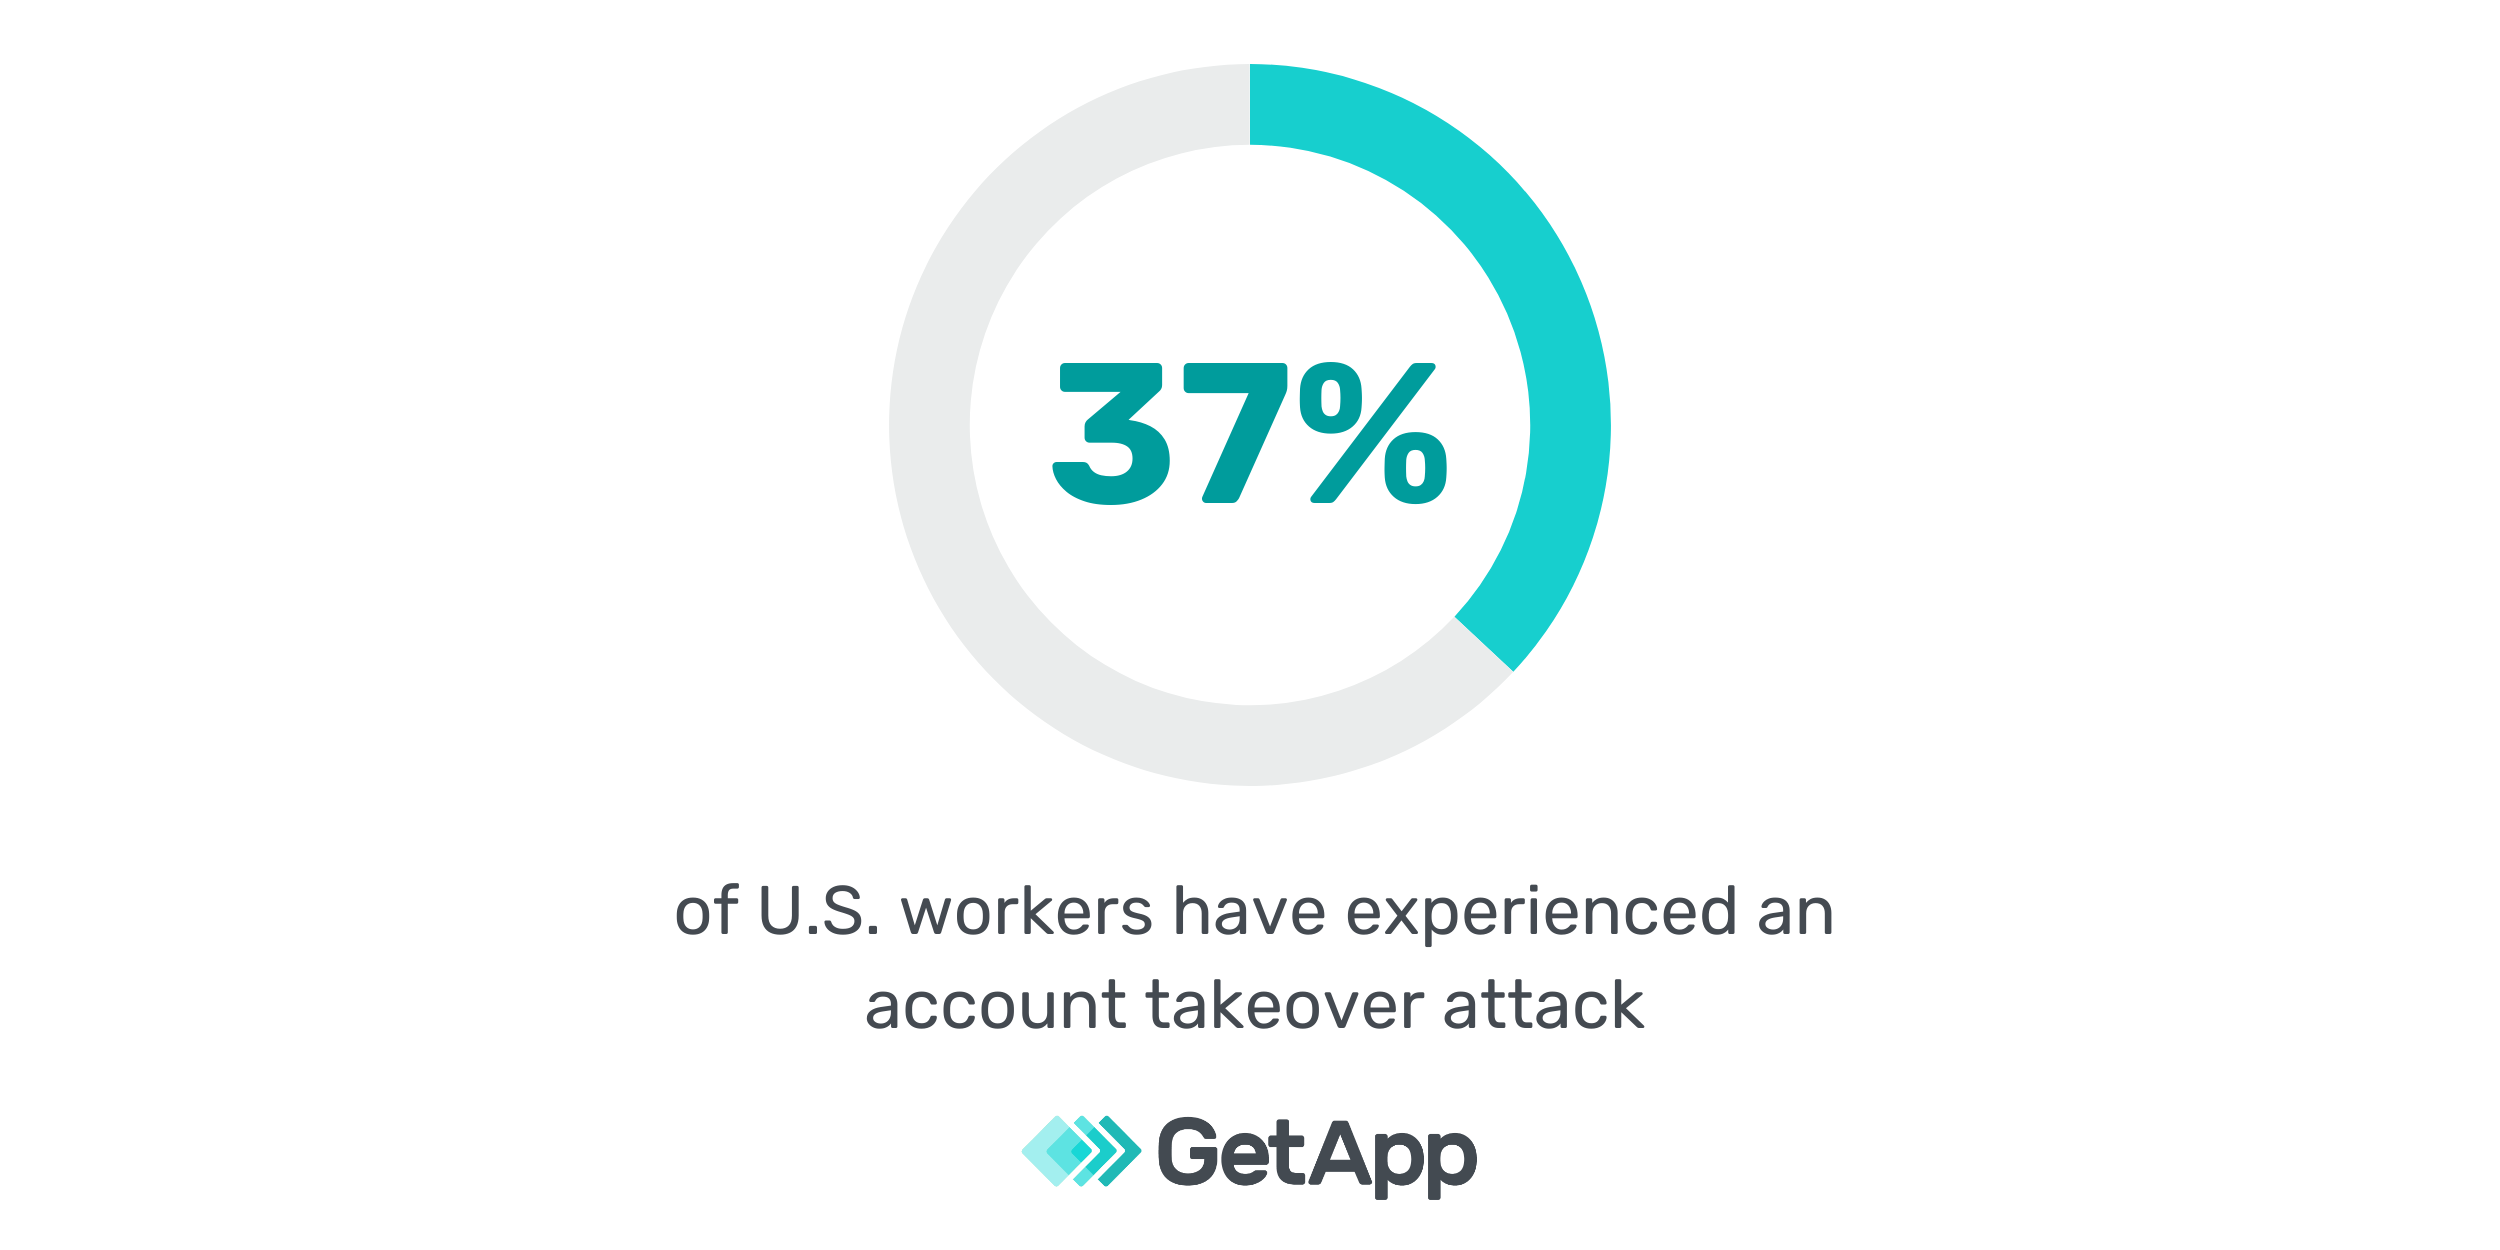 37 percent of u.s. workers have experienced an account takeover attack